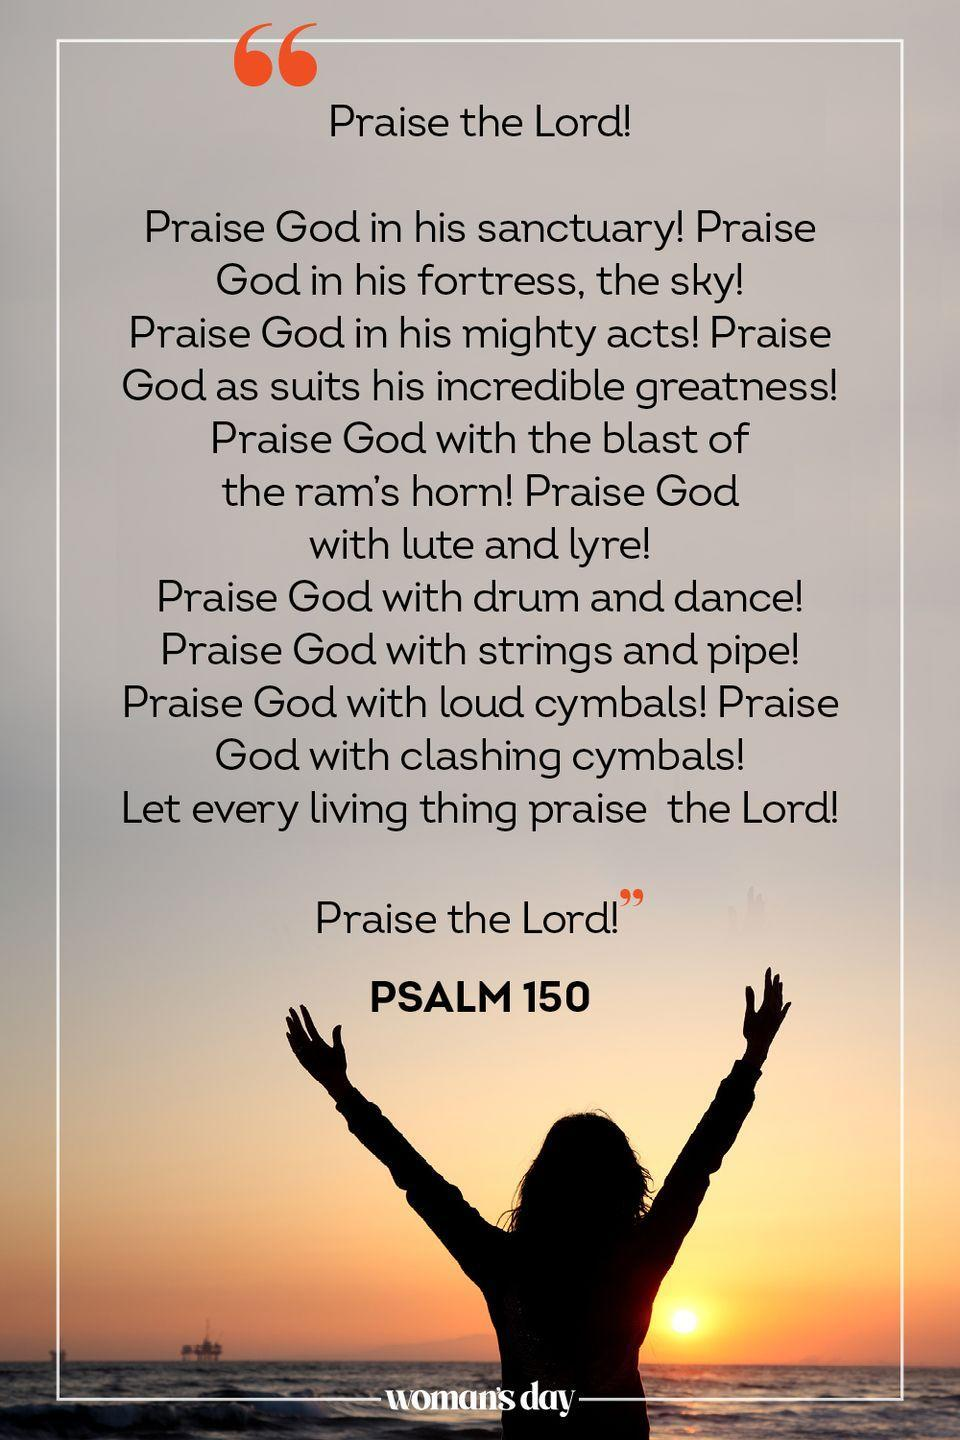 "<p>""Praise the Lord!</p><p>Praise God in his sanctuary! Praise God in his fortress, the sky!<br>Praise God in his mighty acts! Praise God as suits his incredible greatness!<br>Praise God with the blast of the ram's horn! Praise God with lute and lyre!<br>Praise God with drum and dance! Praise God with strings and pipe!<br>Praise God with loud cymbals! Praise God with clashing cymbals!<br>Let every living thing praise the Lord!</p><p>Praise the Lord!"" — Psalm 150</p><p>__________________________________________________________</p><p><em> Want more Woman's Day? <a href=""https://subscribe.hearstmags.com/subscribe/womansday/253396?source=wdy_edit_article"" rel=""nofollow noopener"" target=""_blank"" data-ylk=""slk:Subscribe to Woman's Day"" class=""link rapid-noclick-resp"">Subscribe to Woman's Day</a> today and get <strong>73% off your first 12 issues</strong>. And while you're at it, <a href=""https://subscribe.hearstmags.com/circulation/shared/email/newsletters/signup/wdy-su01.html"" rel=""nofollow noopener"" target=""_blank"" data-ylk=""slk:sign up for our FREE newsletter"" class=""link rapid-noclick-resp"">sign up for our FREE newsletter</a> for even more of the Woman's Day content you want.</em></p>"